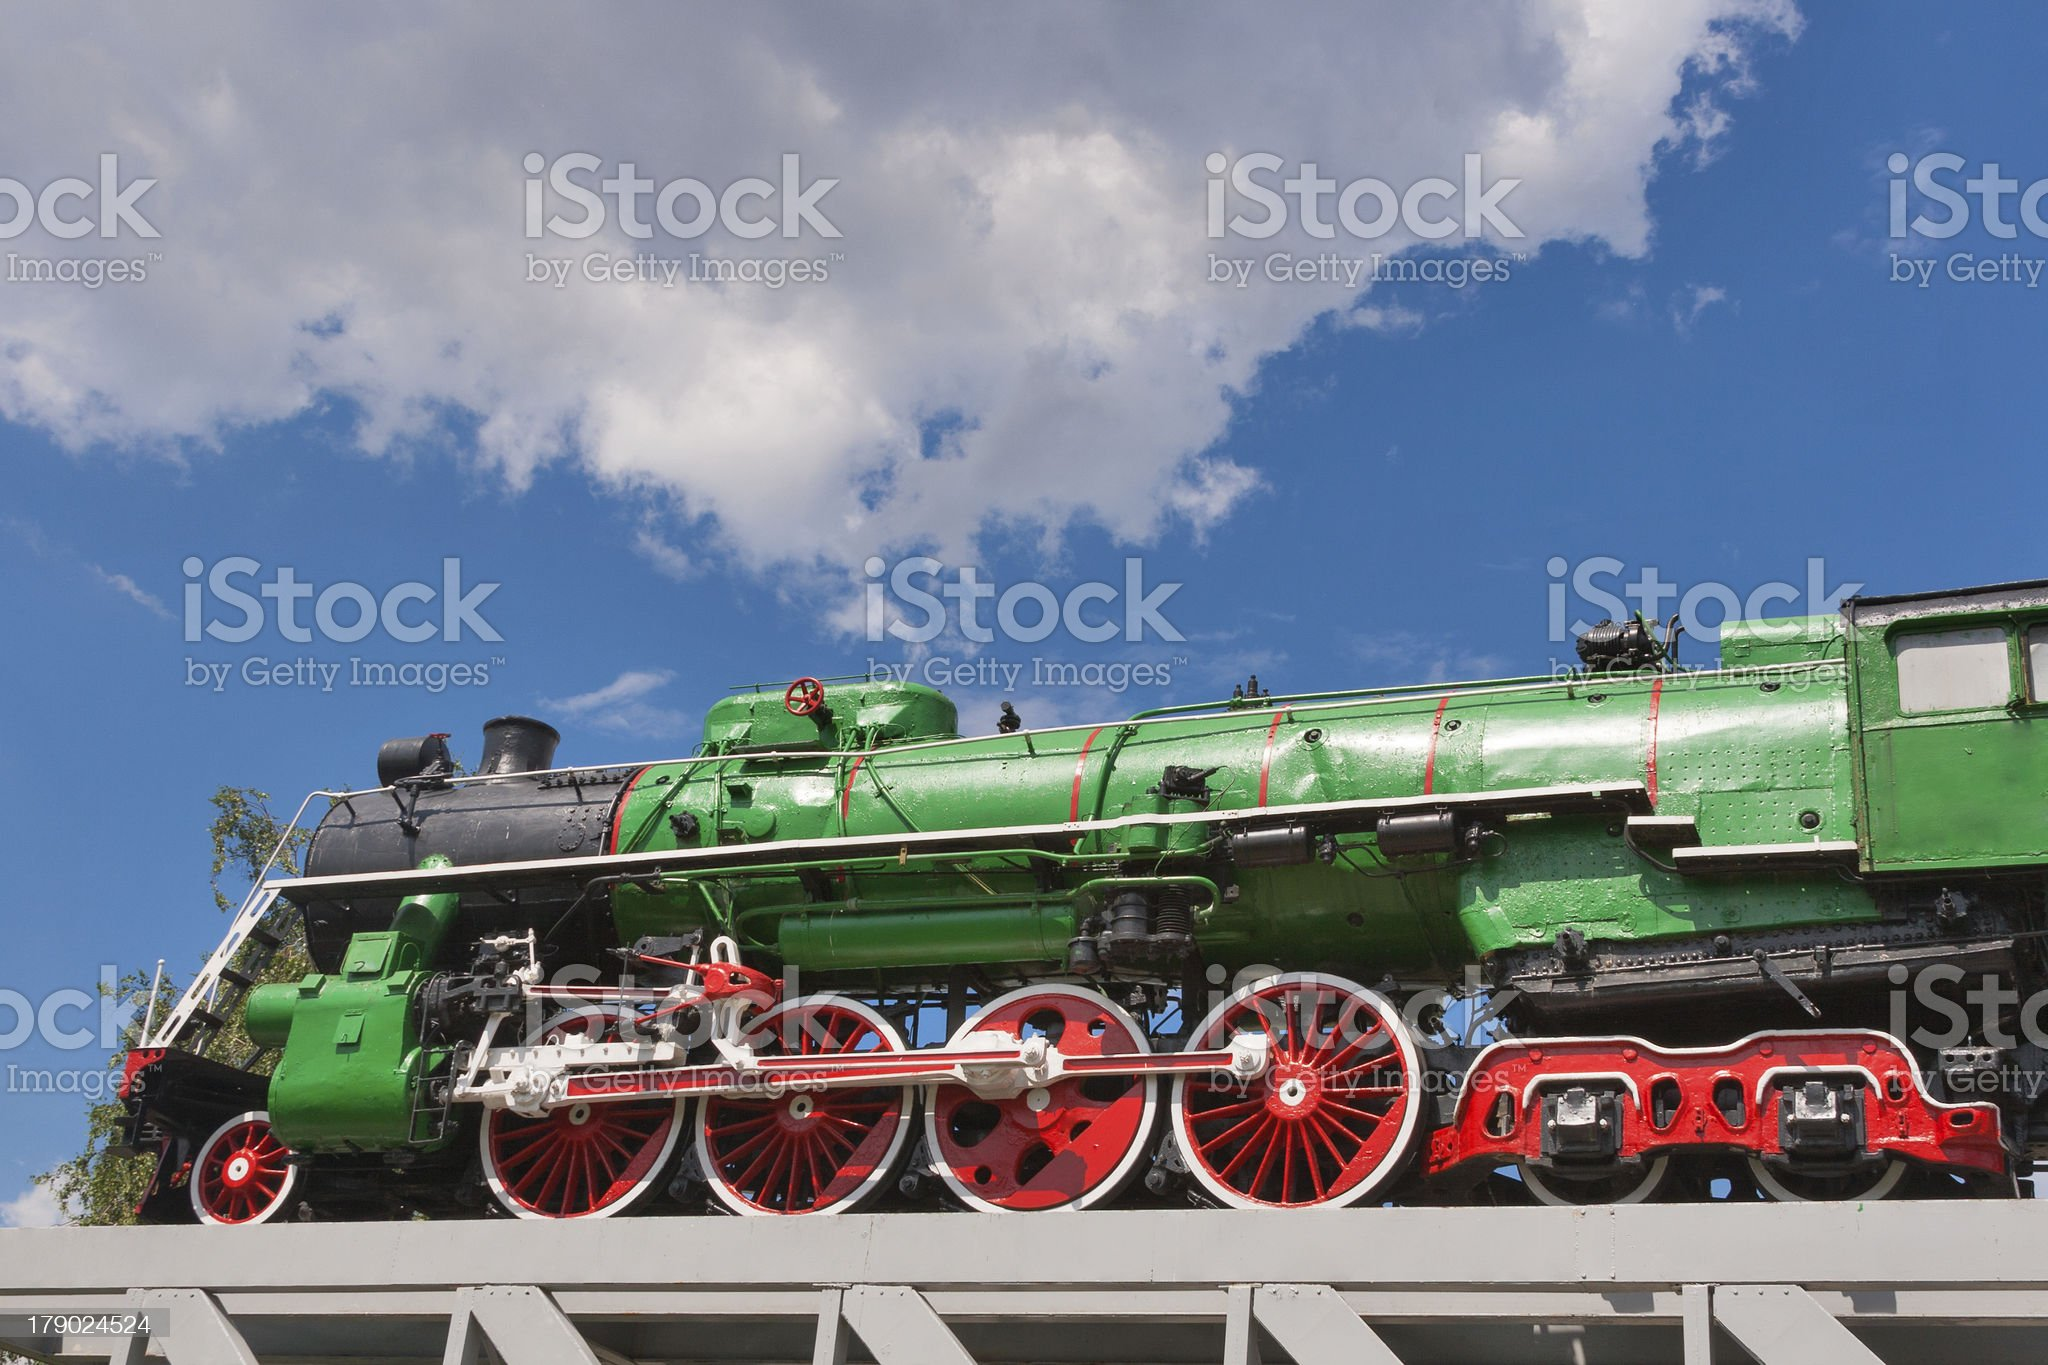 Vintage Steam Locomotive royalty-free stock photo